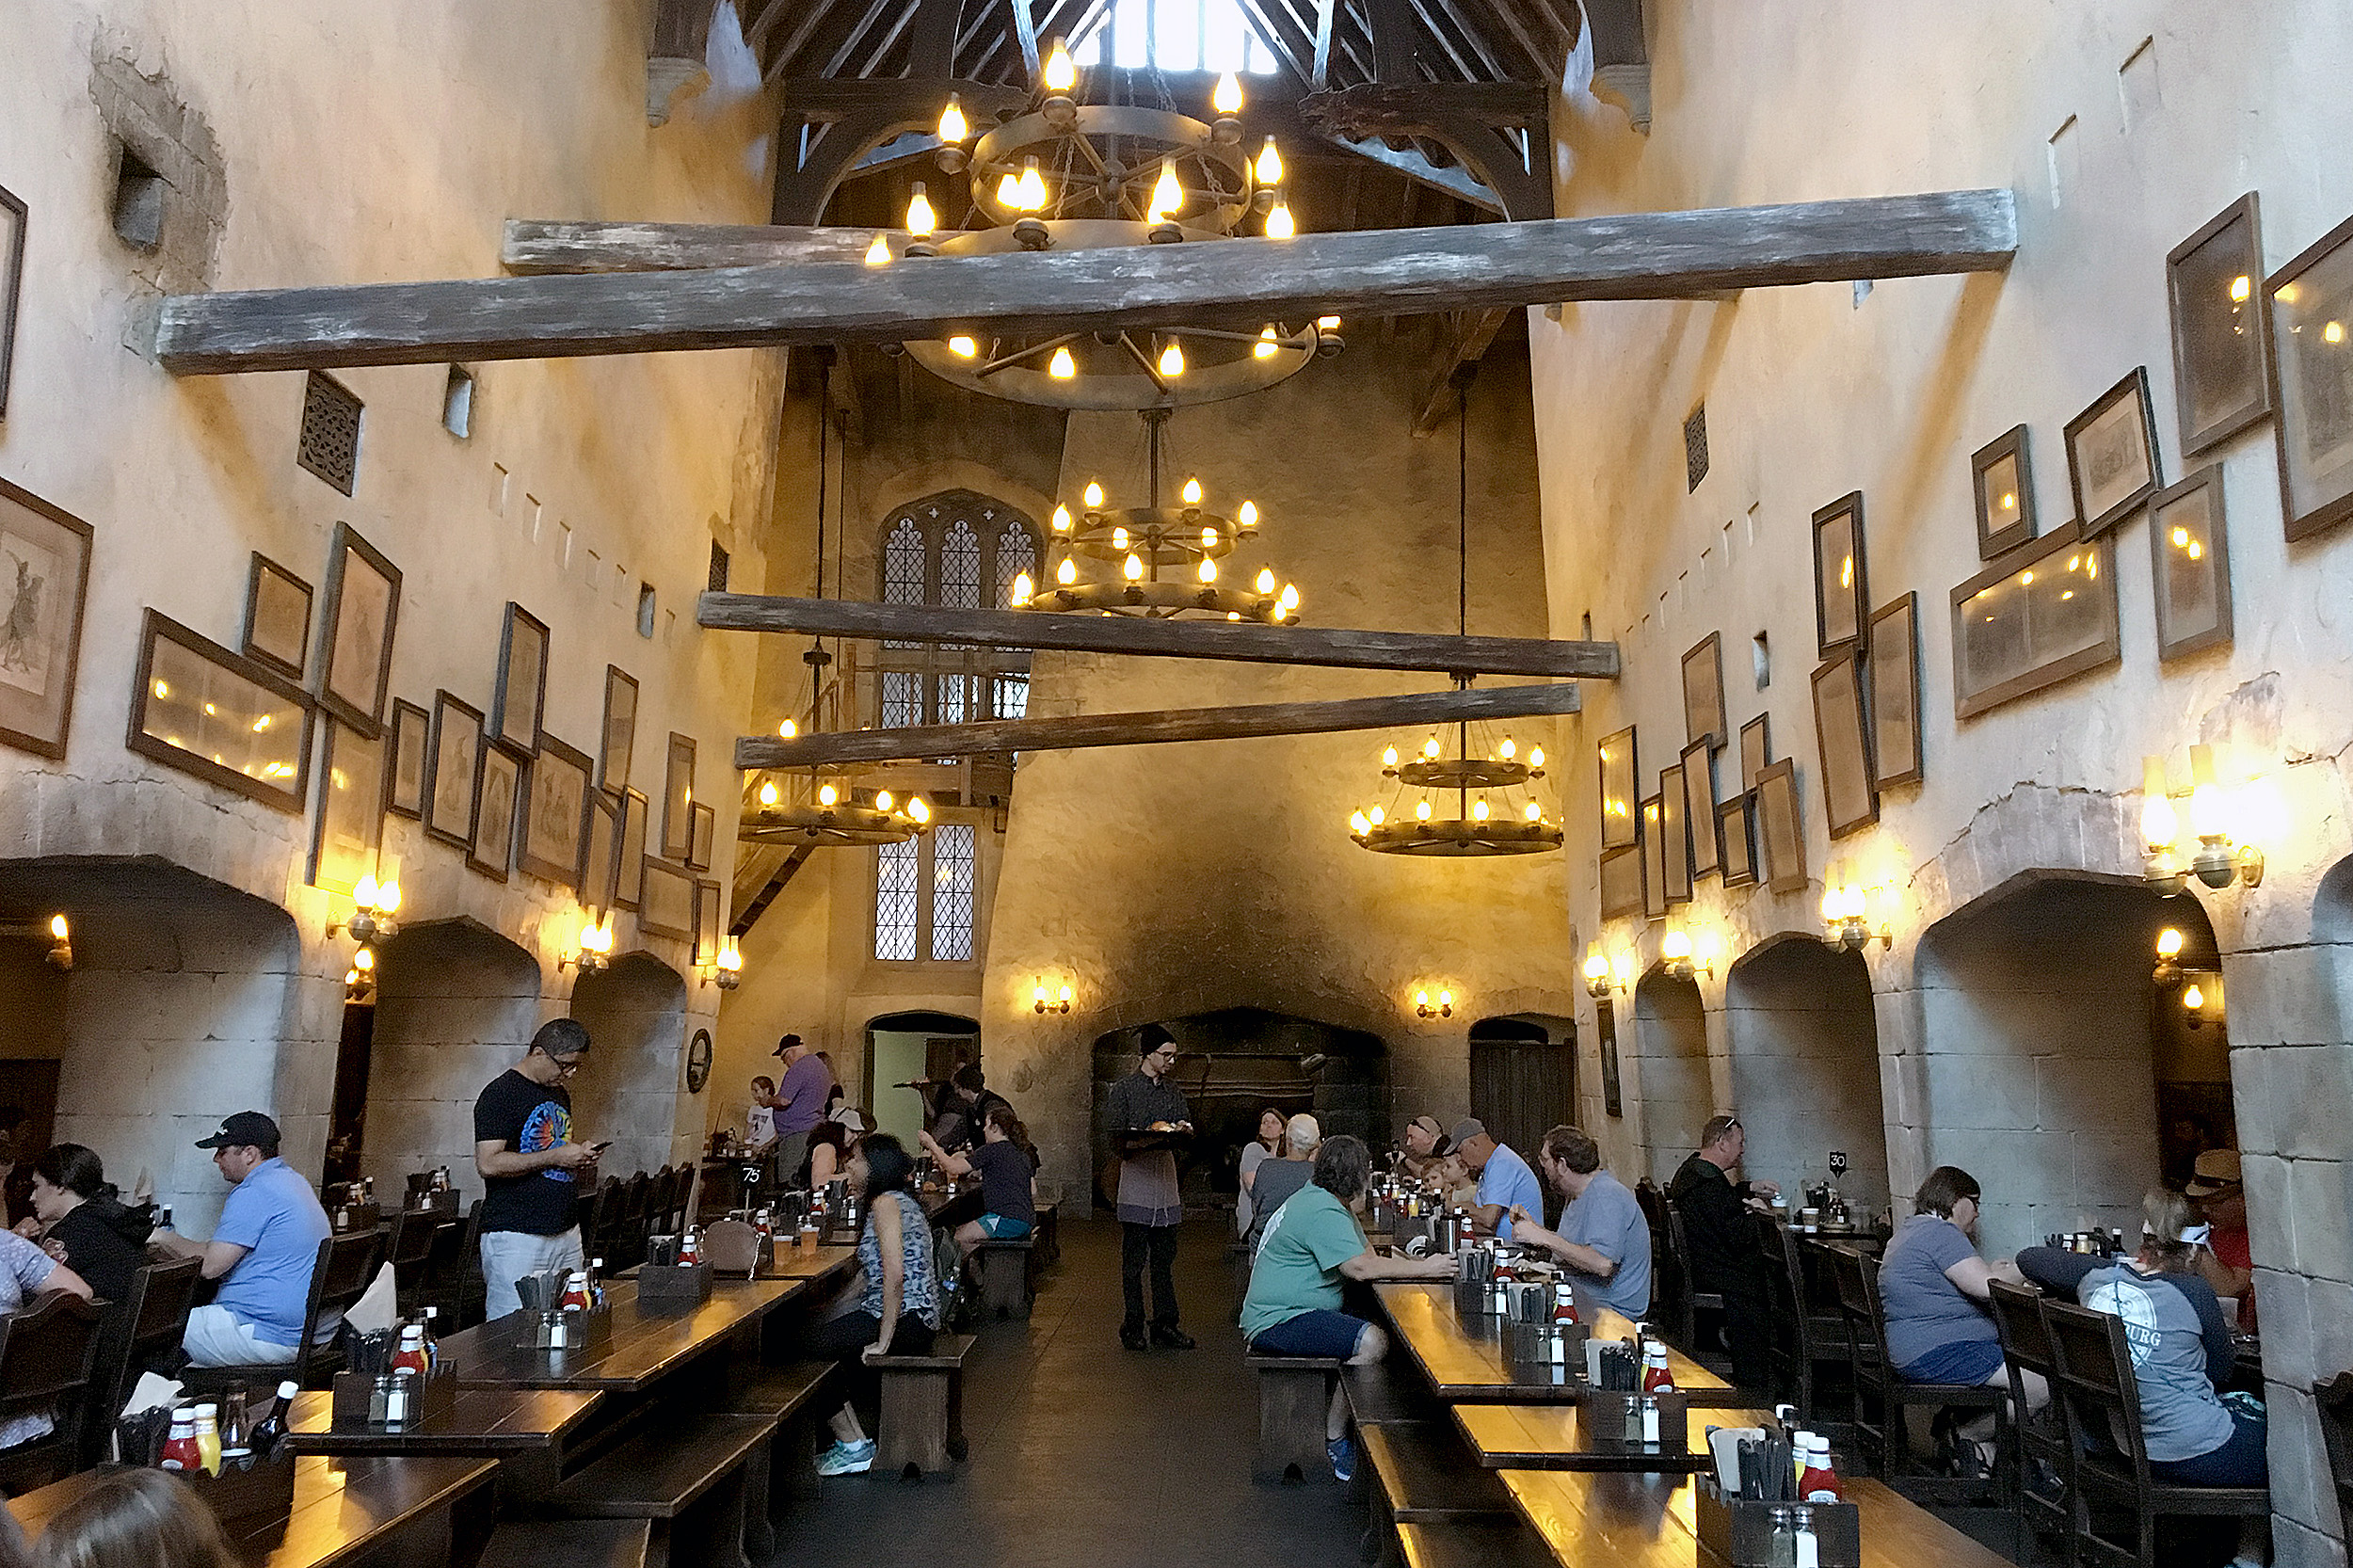 The Leaky Cauldron. The wizarding world of harry potter.